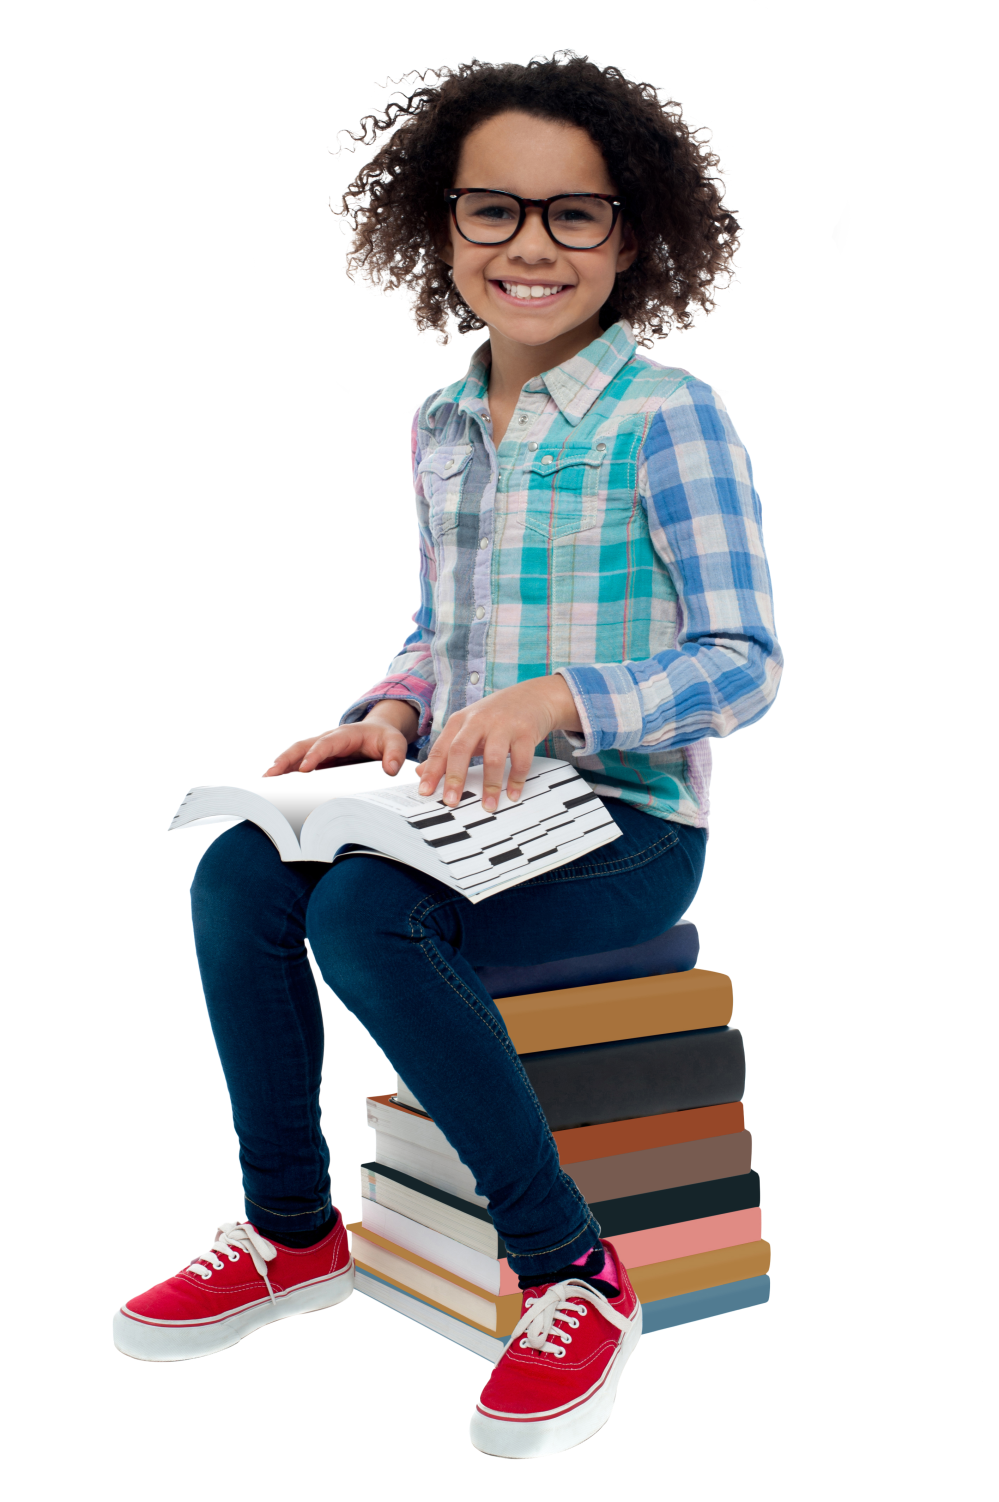 medium resolution of young girl student download free png image student sitting png